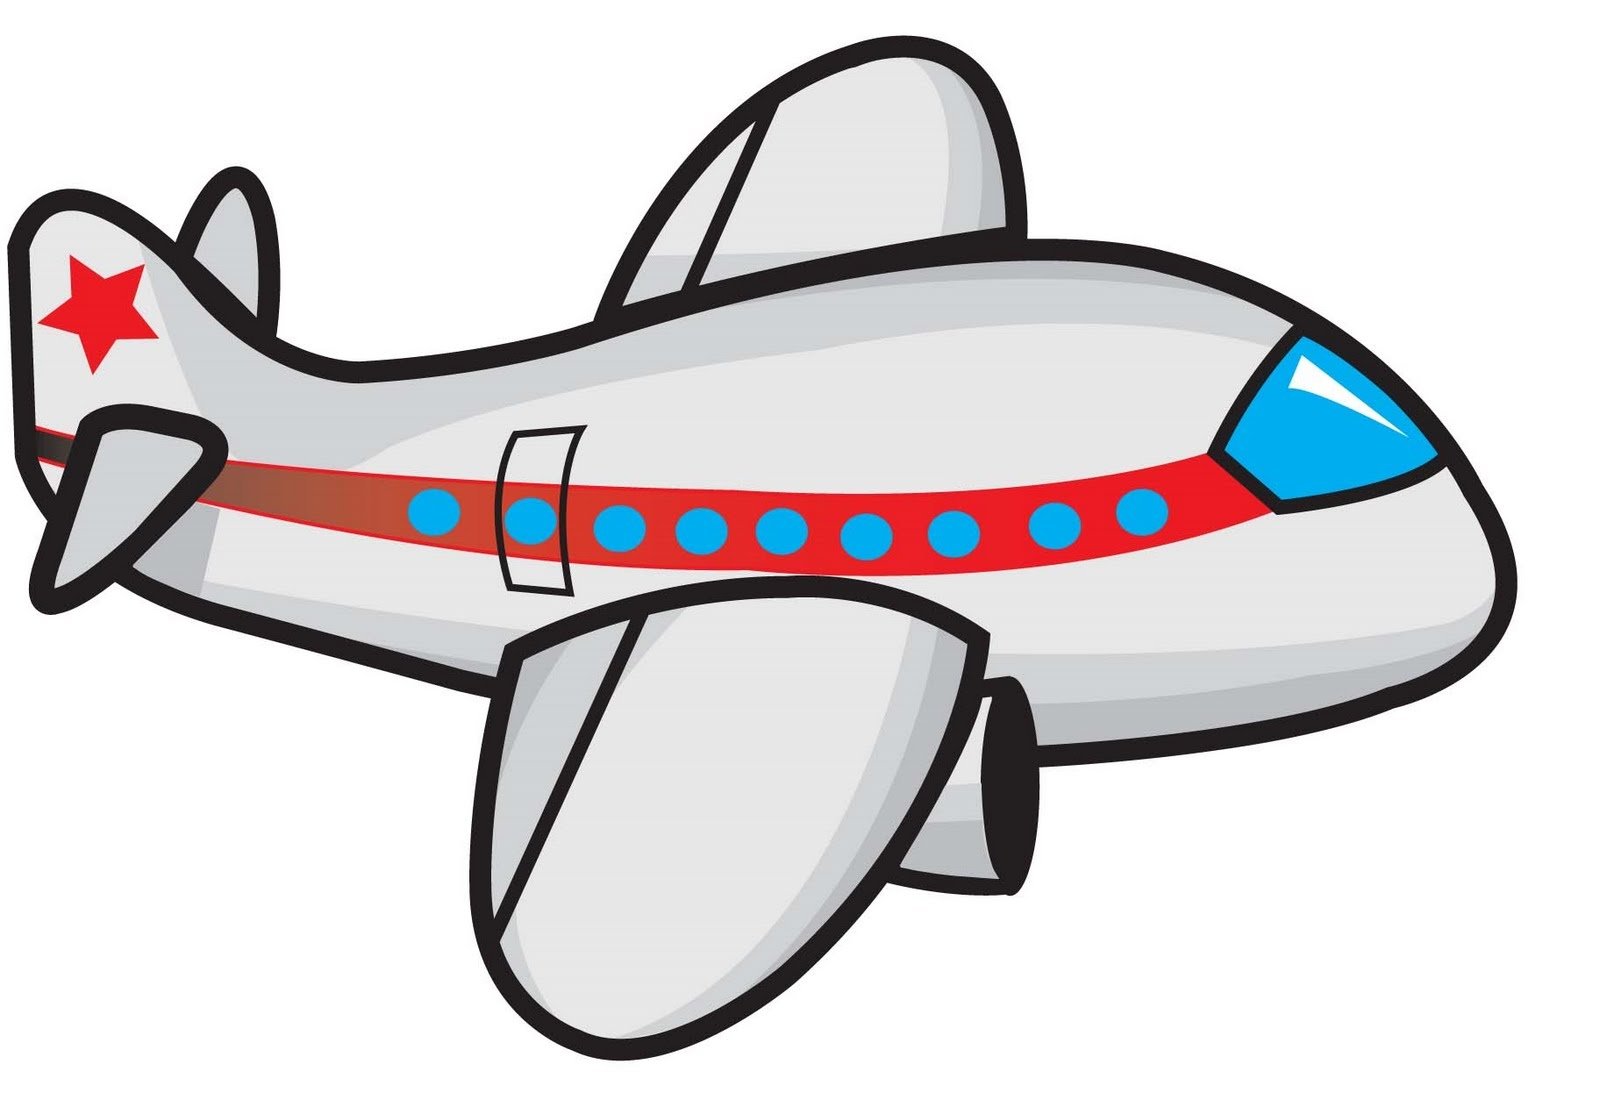 1600x1100 Animated Plane Cliparts Many Interesting Cliparts